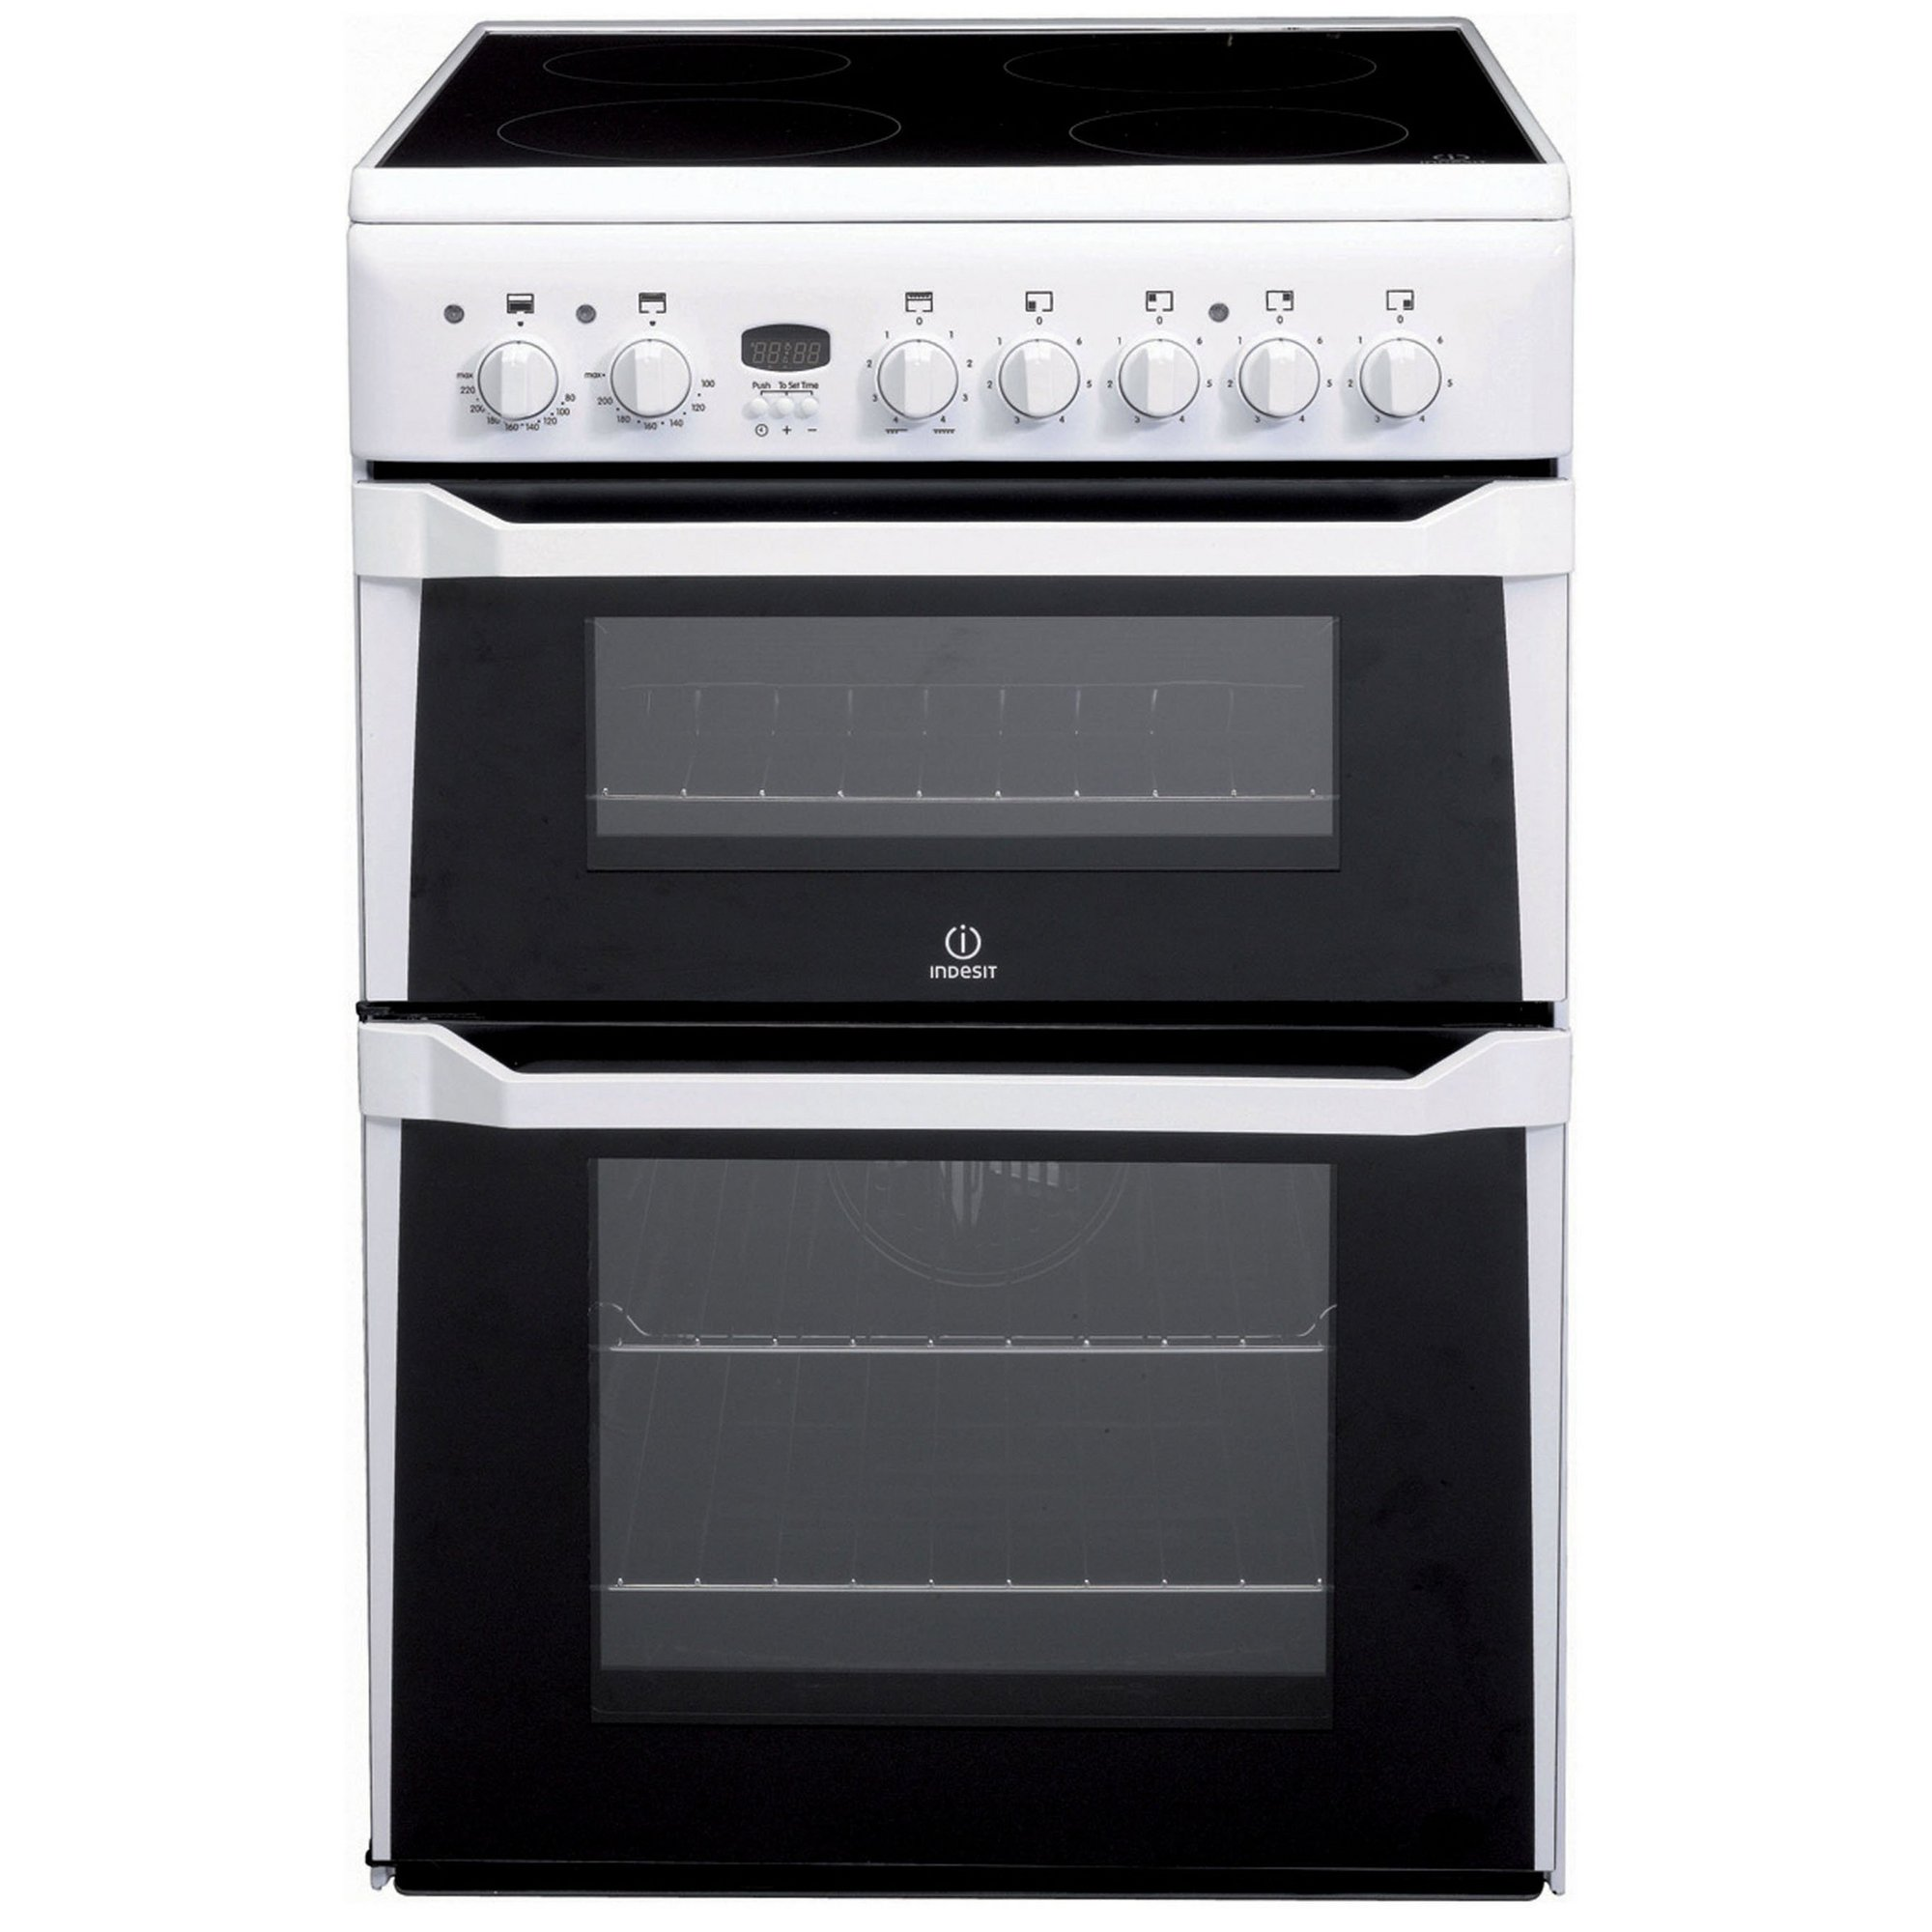 Image of Indesit 60cm Double Oven Electric Cooker